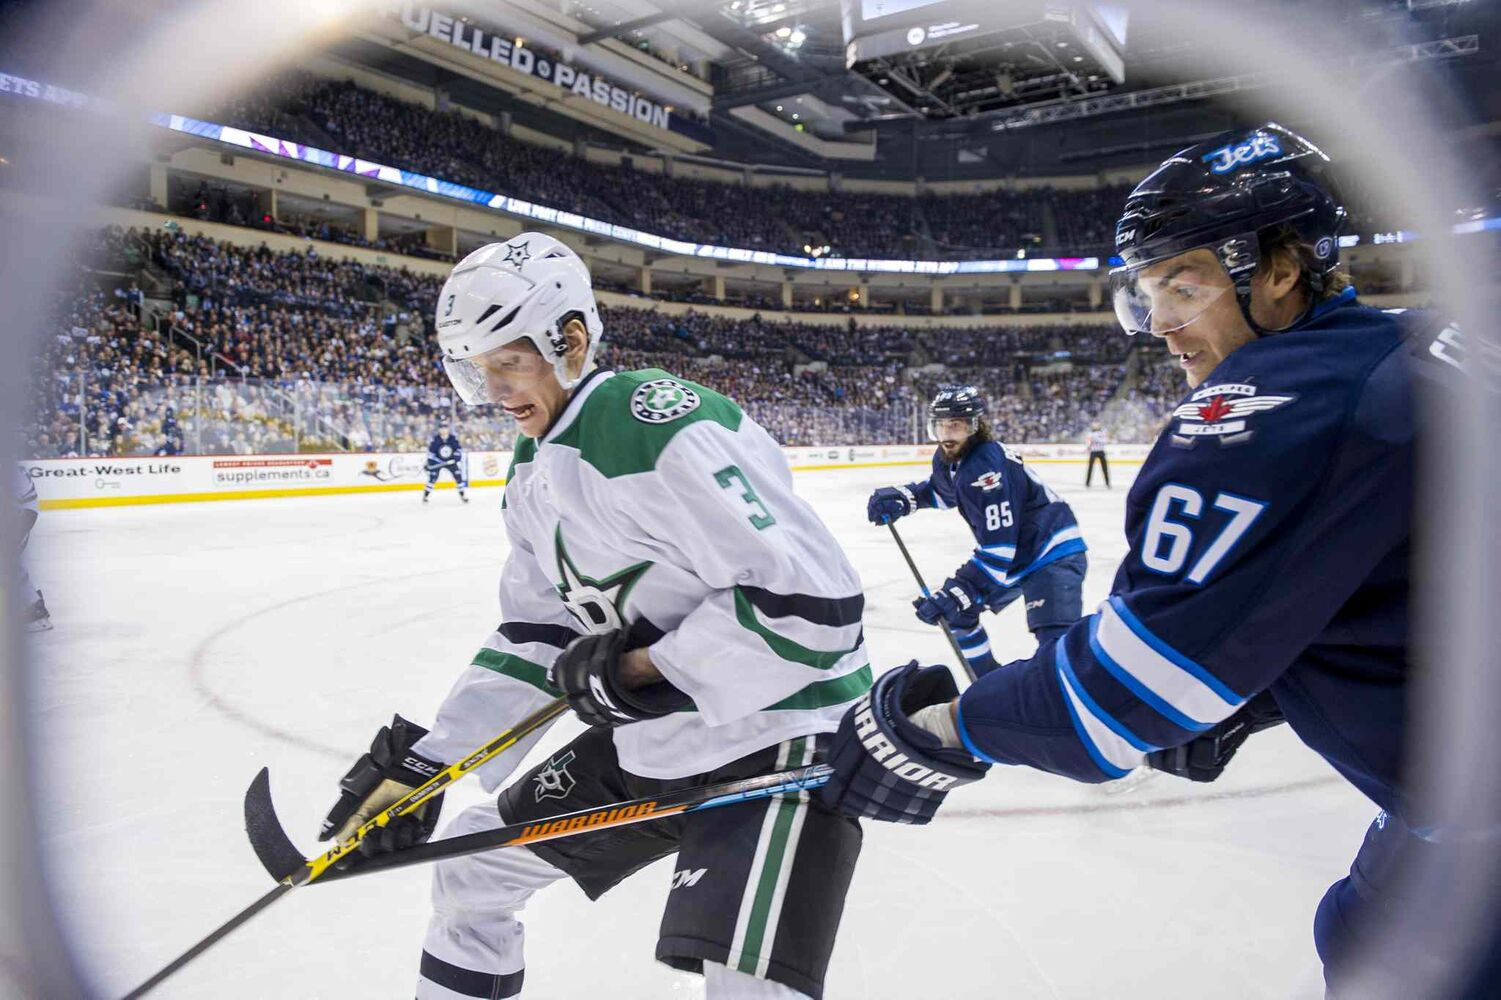 Winnipeg Jets Michael Frolik (#67) collides with Dallas Stars John Klingberg (#3) during second period. (David Lipnowski / Winnipeg Free Press)